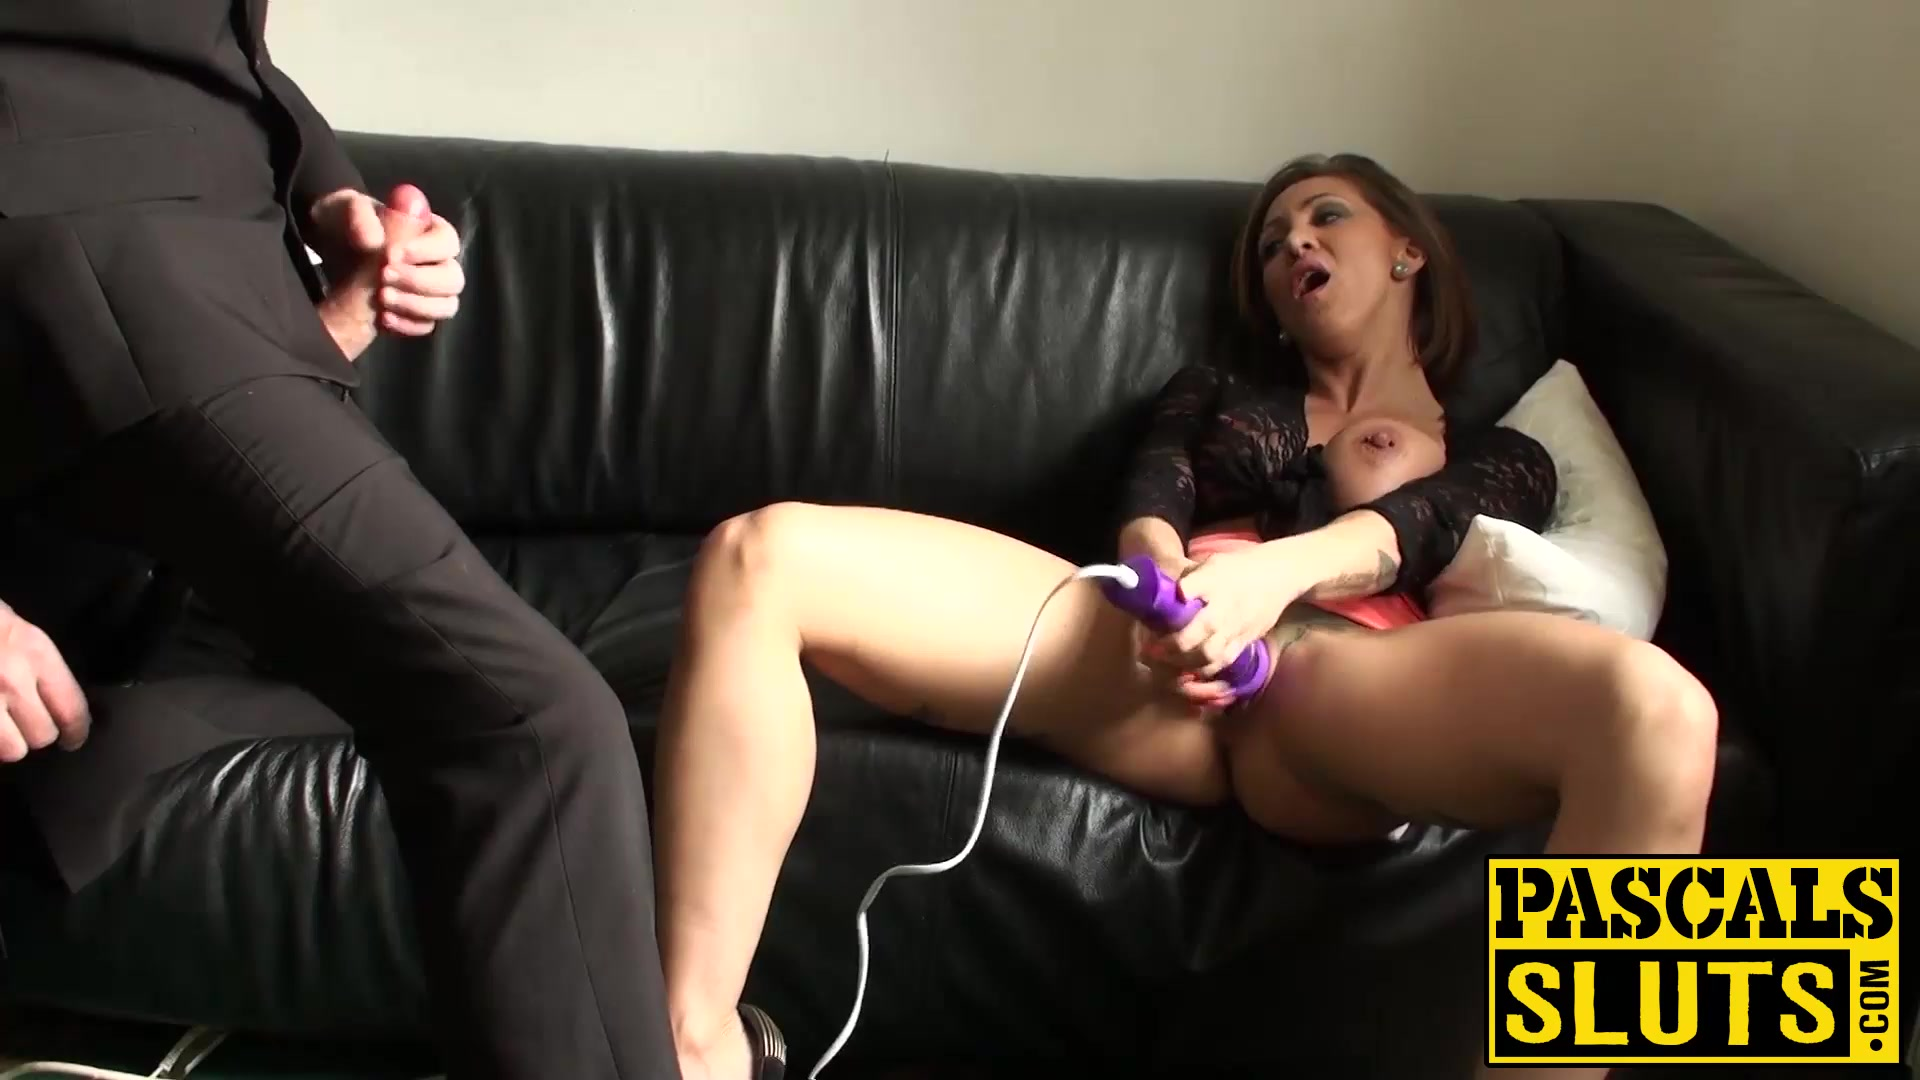 xxx pics Cum on open mature pussy scary wet